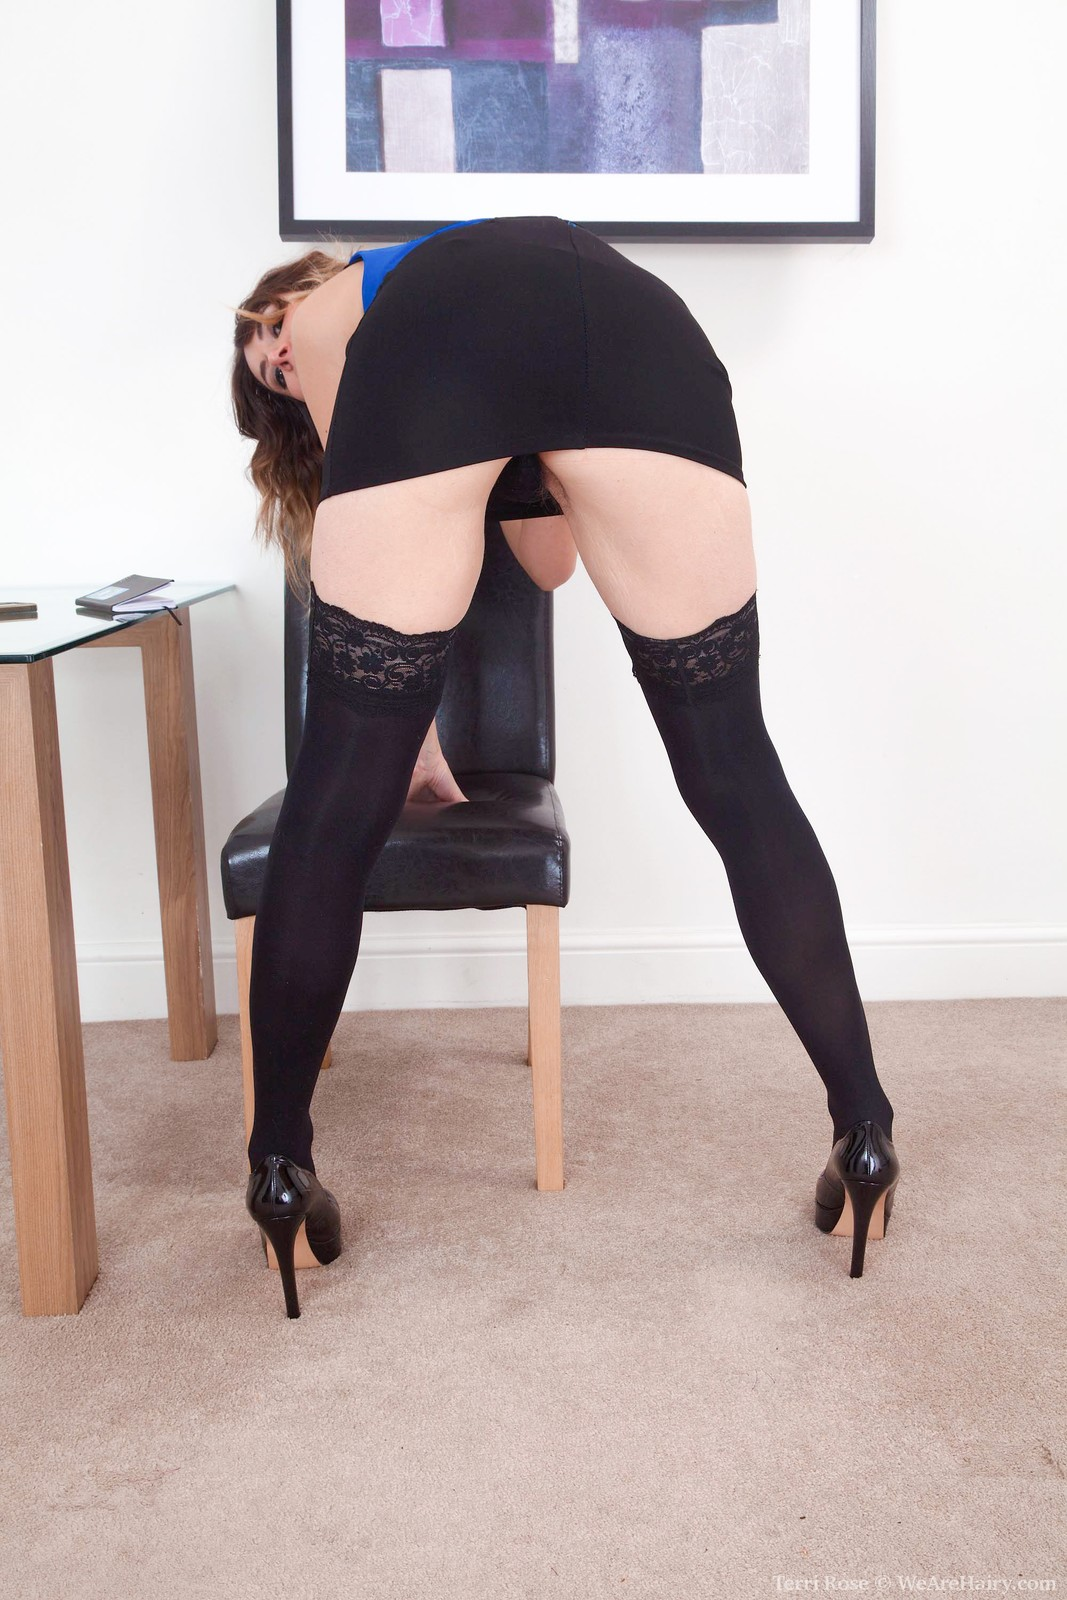 TerriRose_BlueBlouseBlackStockings_012